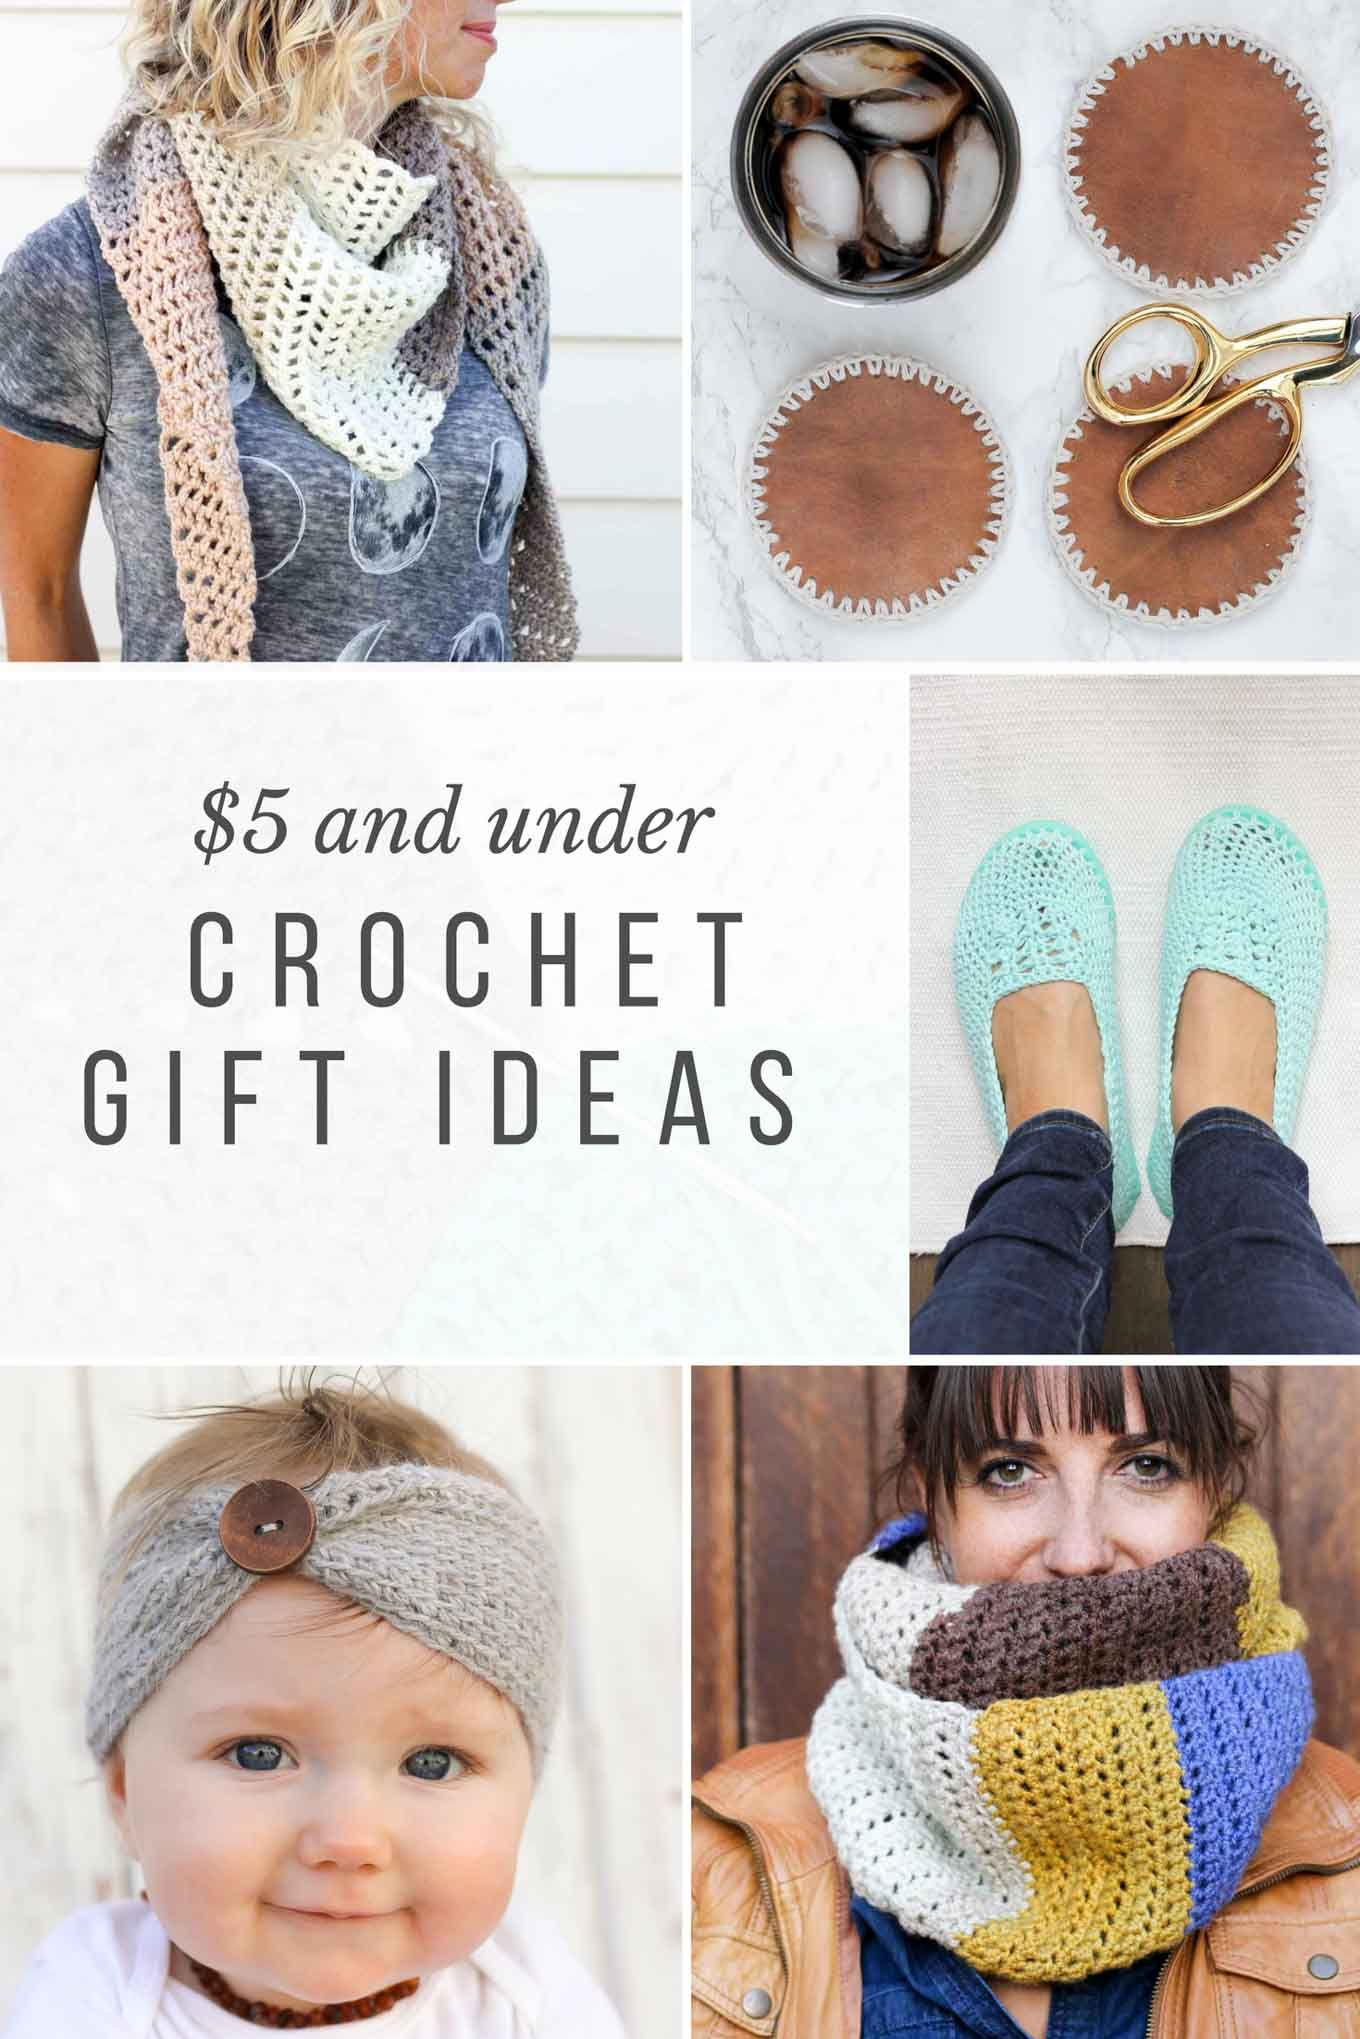 10+ Crochet Gift Ideas to Make for $5 or Less | Bordes de ganchillo ...